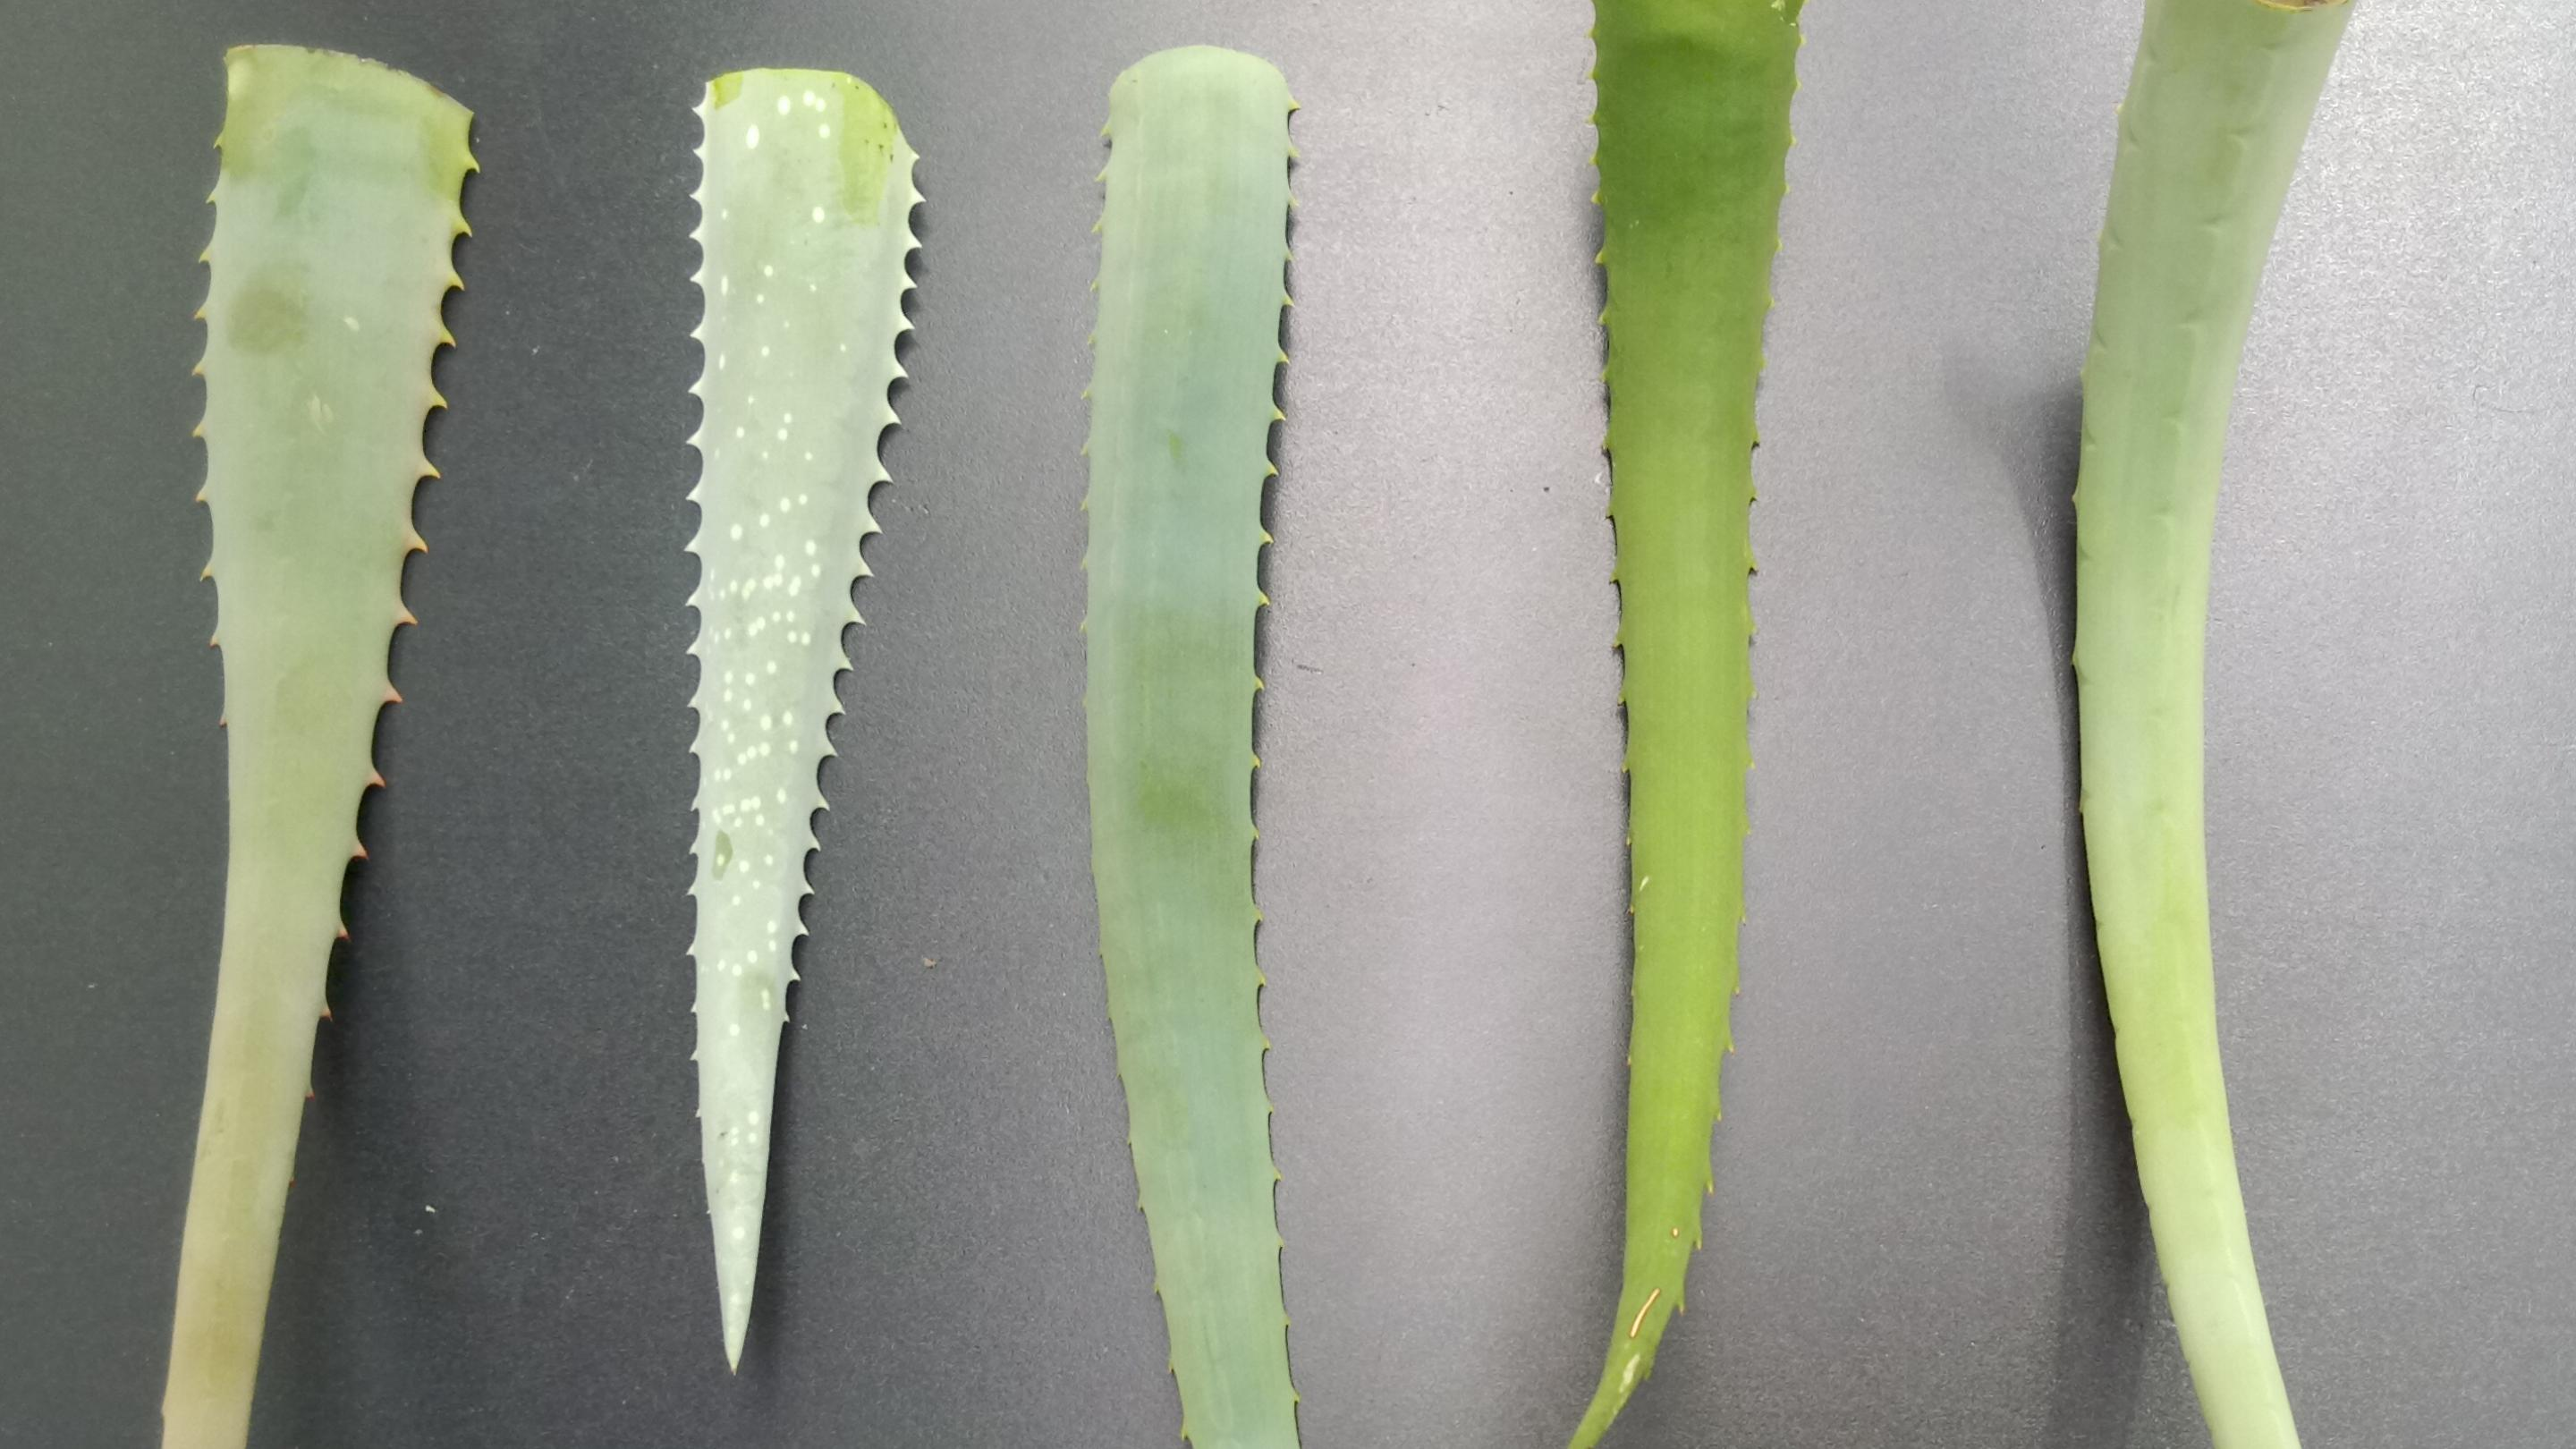 Image showing Leaves of five different Aloe species, could you tell them apart? From left to right: Aloe arborescens, A. aageodonta, A. porphyrostachys, A. nyeriensis and A. megalacantha